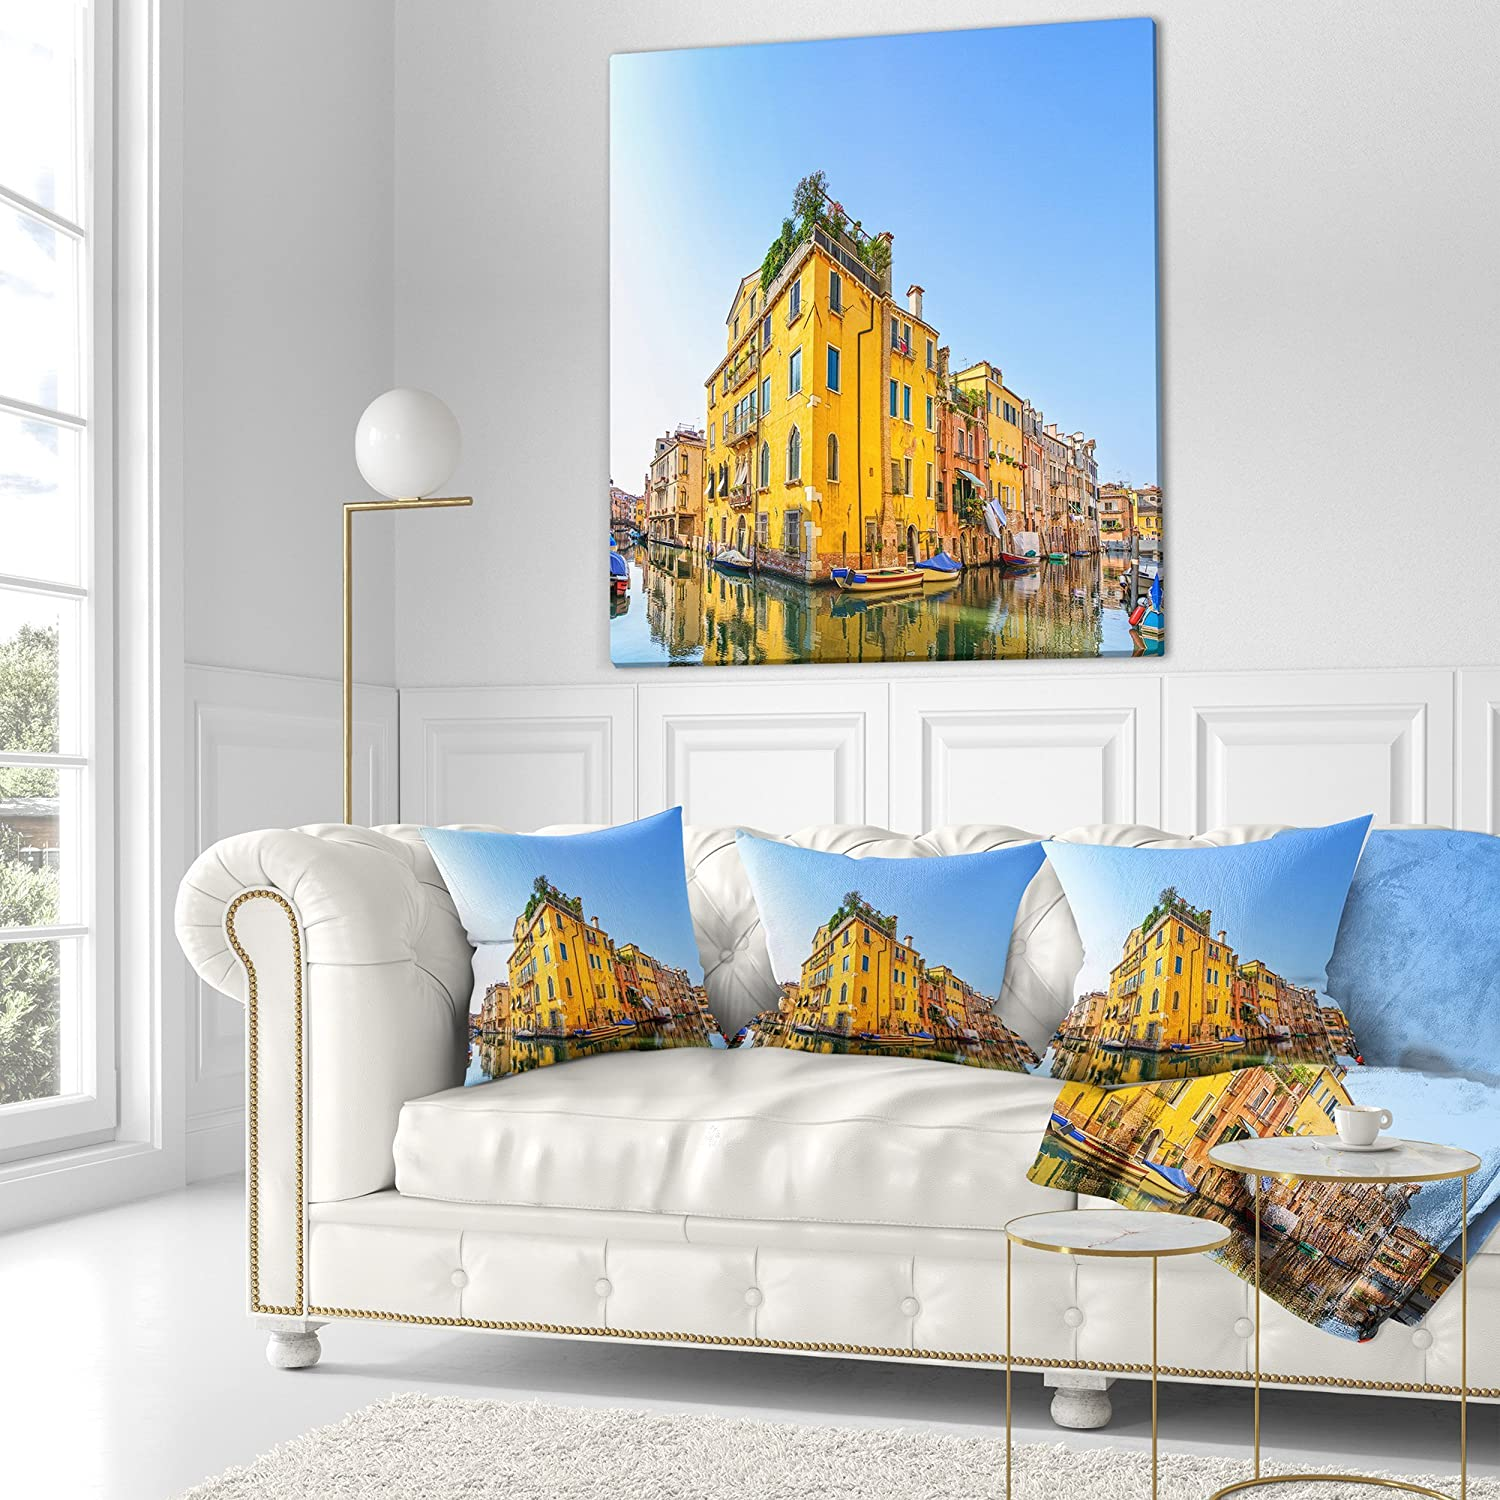 Designart CU13071-18-18 Venice Cityscape Water Canal Abstract Cushion Cover for Living Room Sofa Throw Pillow 18 x 18